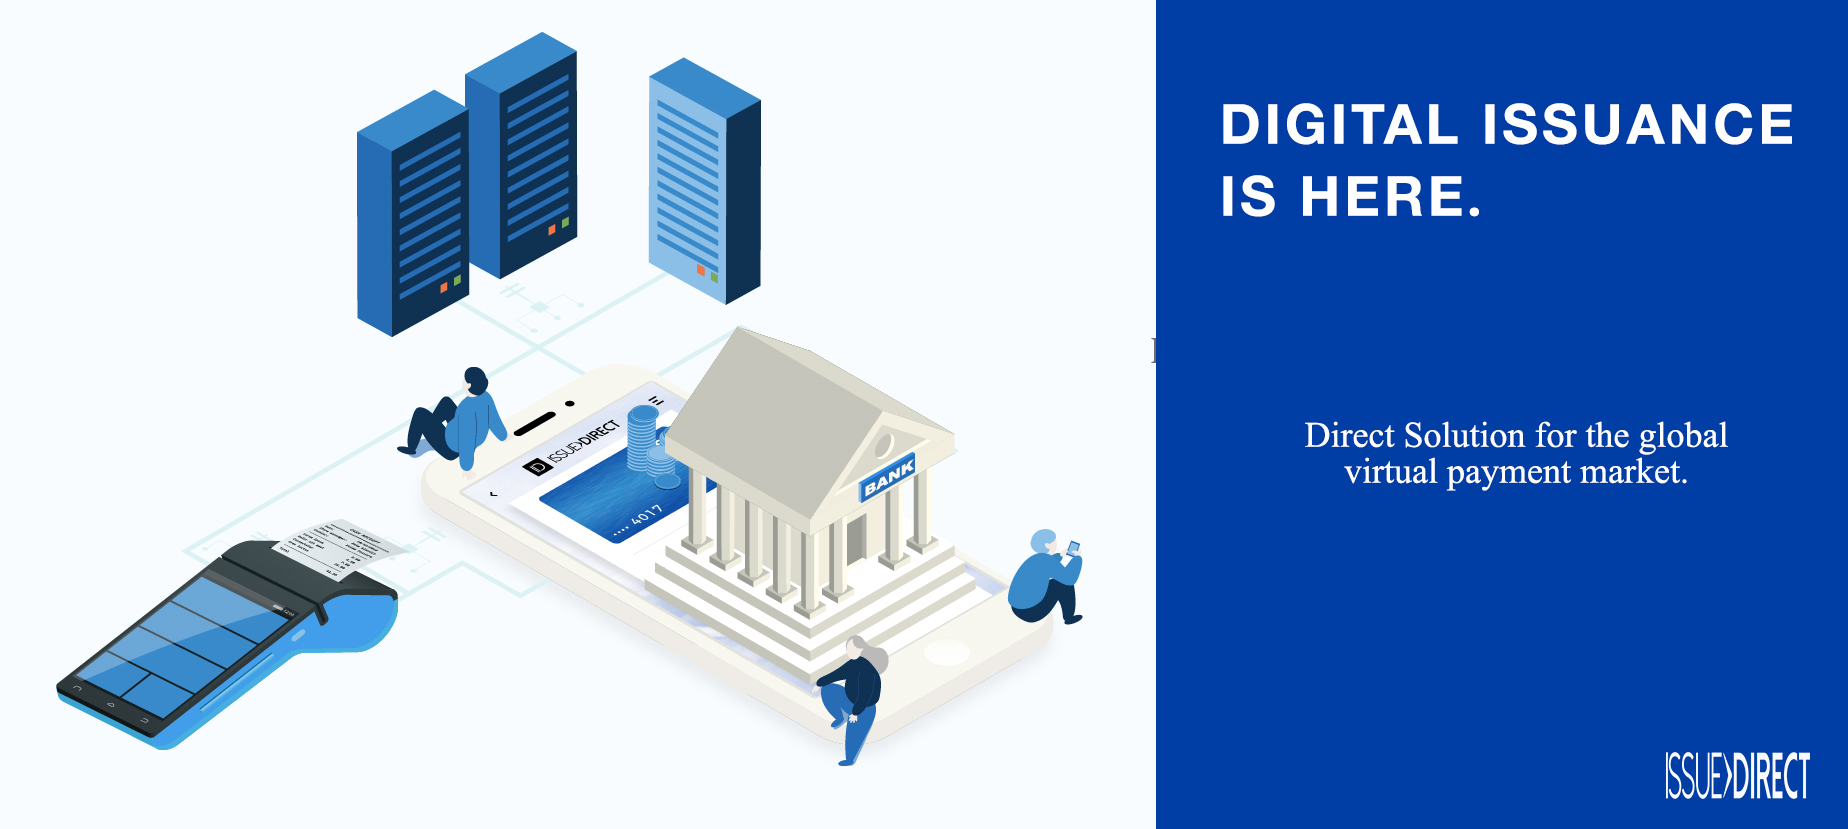 Digital Issuance